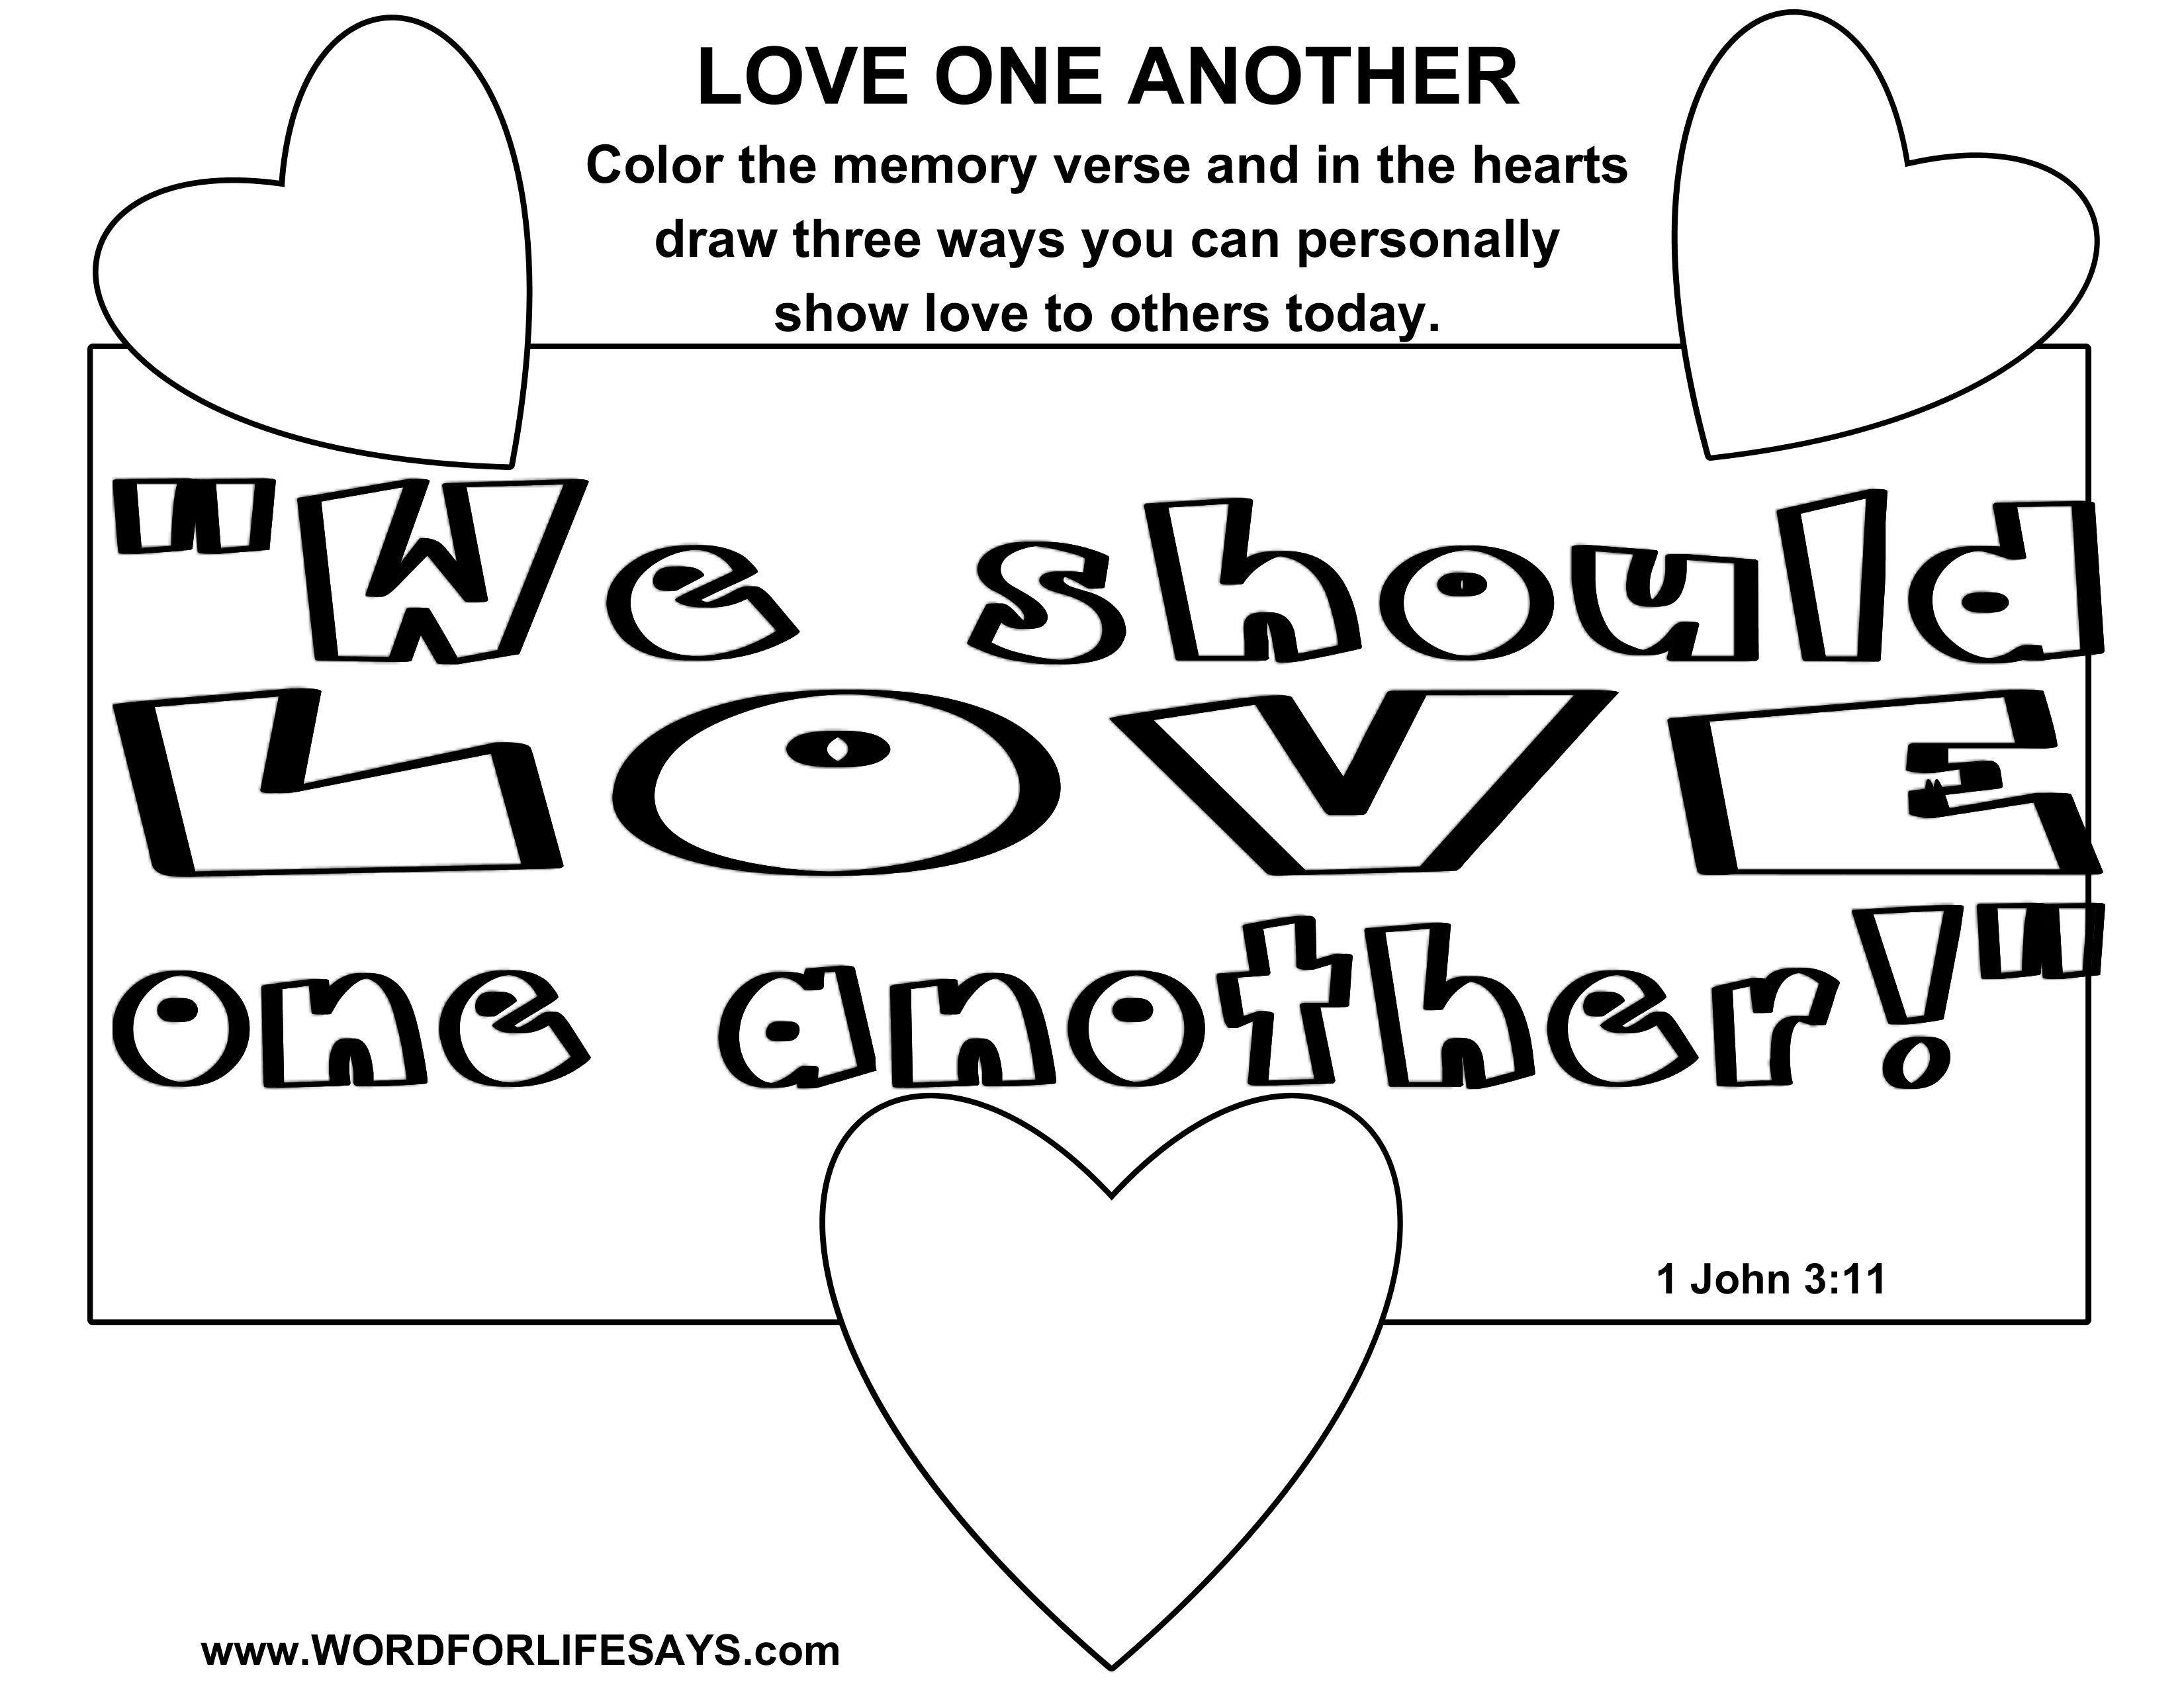 love one another coloring page love one another coloring pages coloring home coloring page one love another